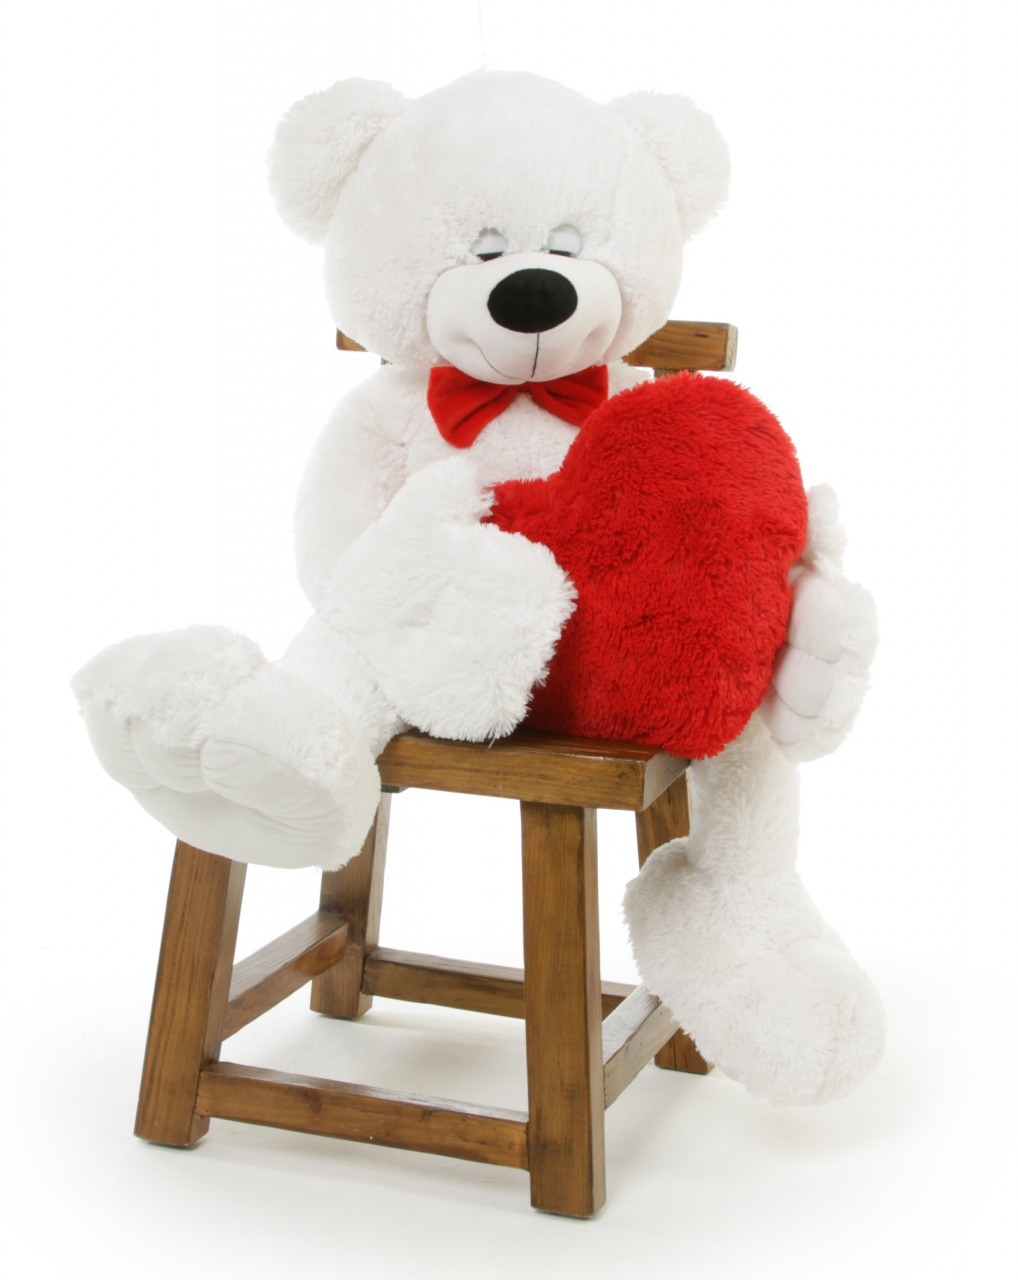 A Unique Valentine's Day gift idea! Surprise your sweetheart with this 4 1/2 foot giant teddy bear for Valentine's Day!